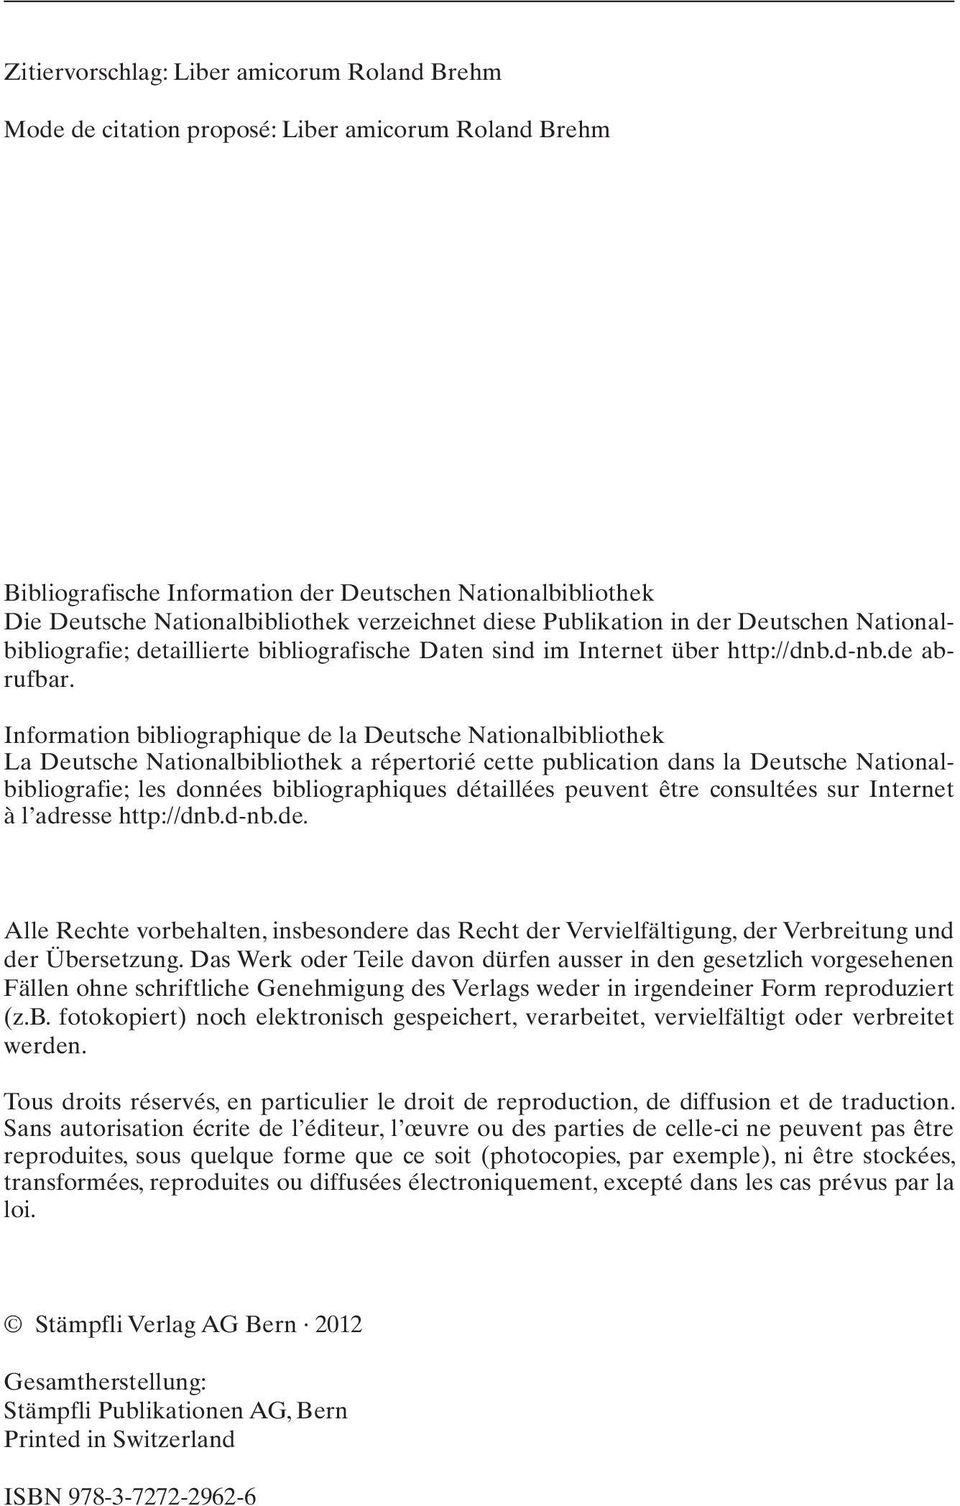 Information bibliographique de la Deutsche Nationalbibliothek La Deutsche Nationalbibliothek a répertorié cette publication dans la Deutsche Nationalbibliografie; les données bibliographiques